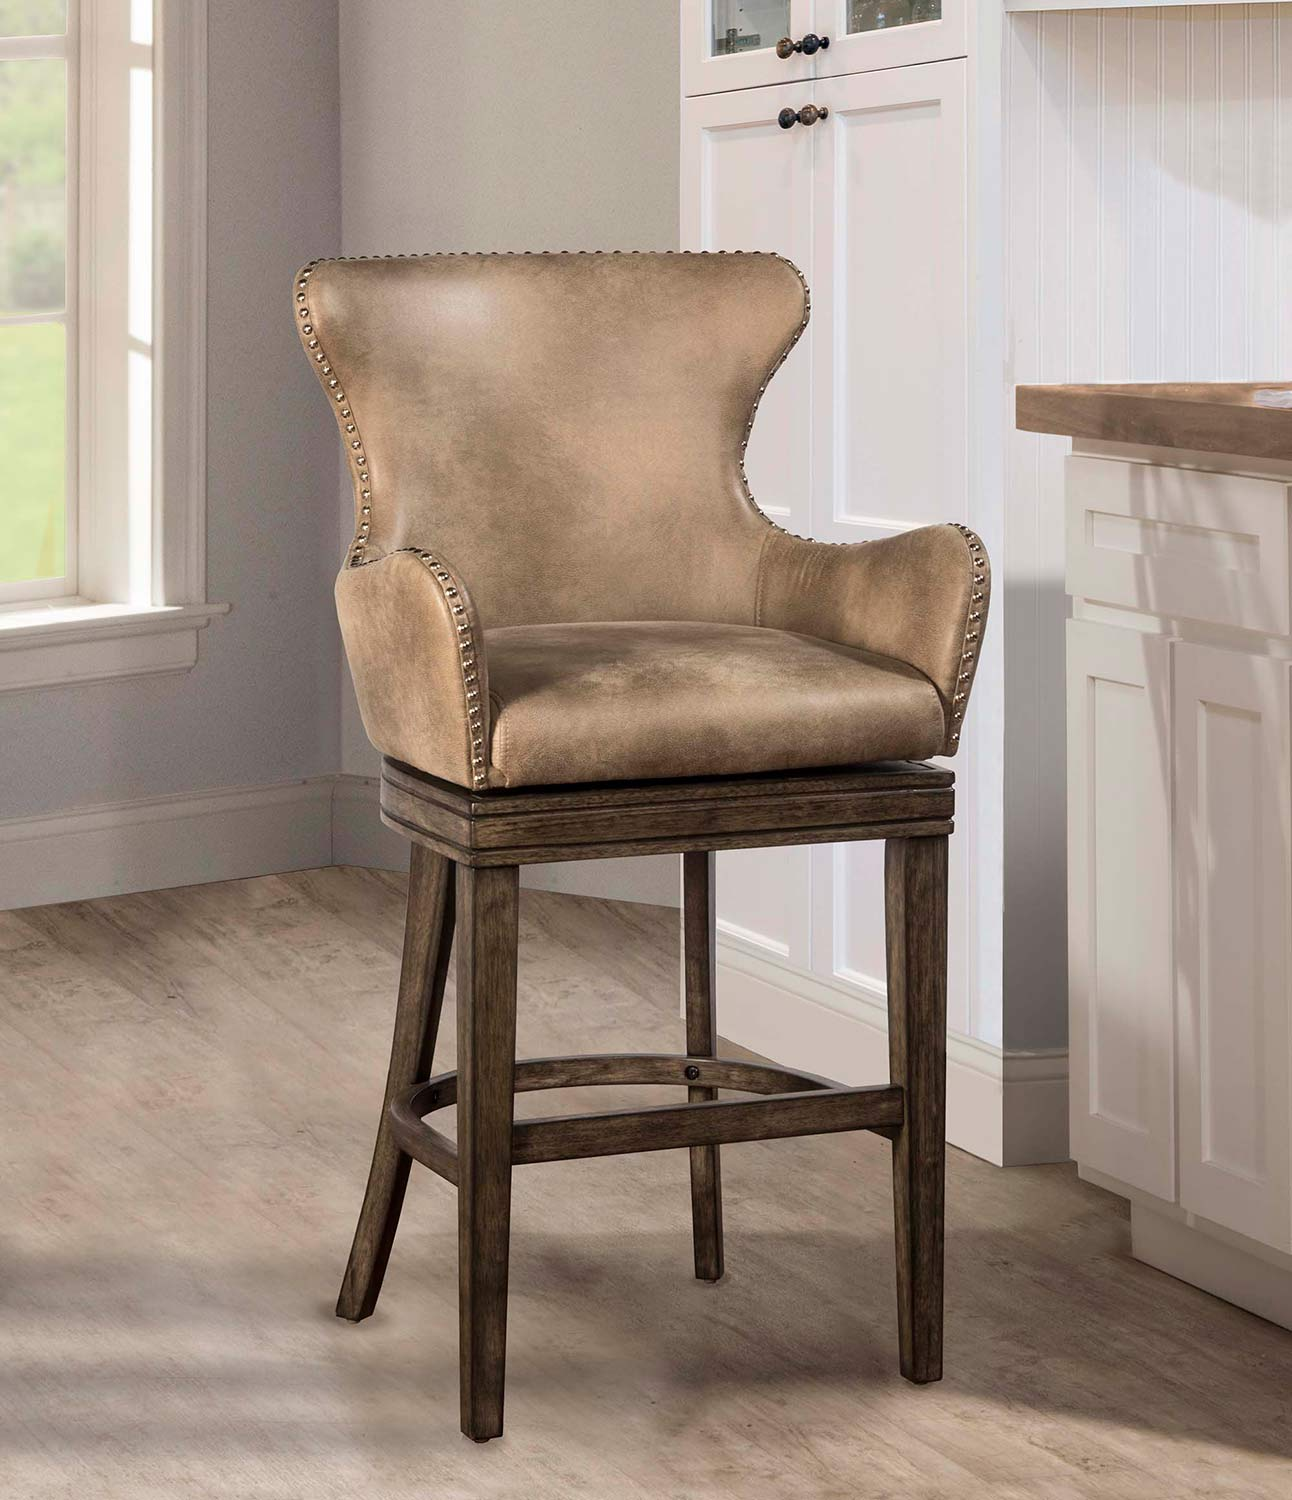 bar stool chair grey best computer for gaming hillsdale caydena swivel rustic gray hd 4346